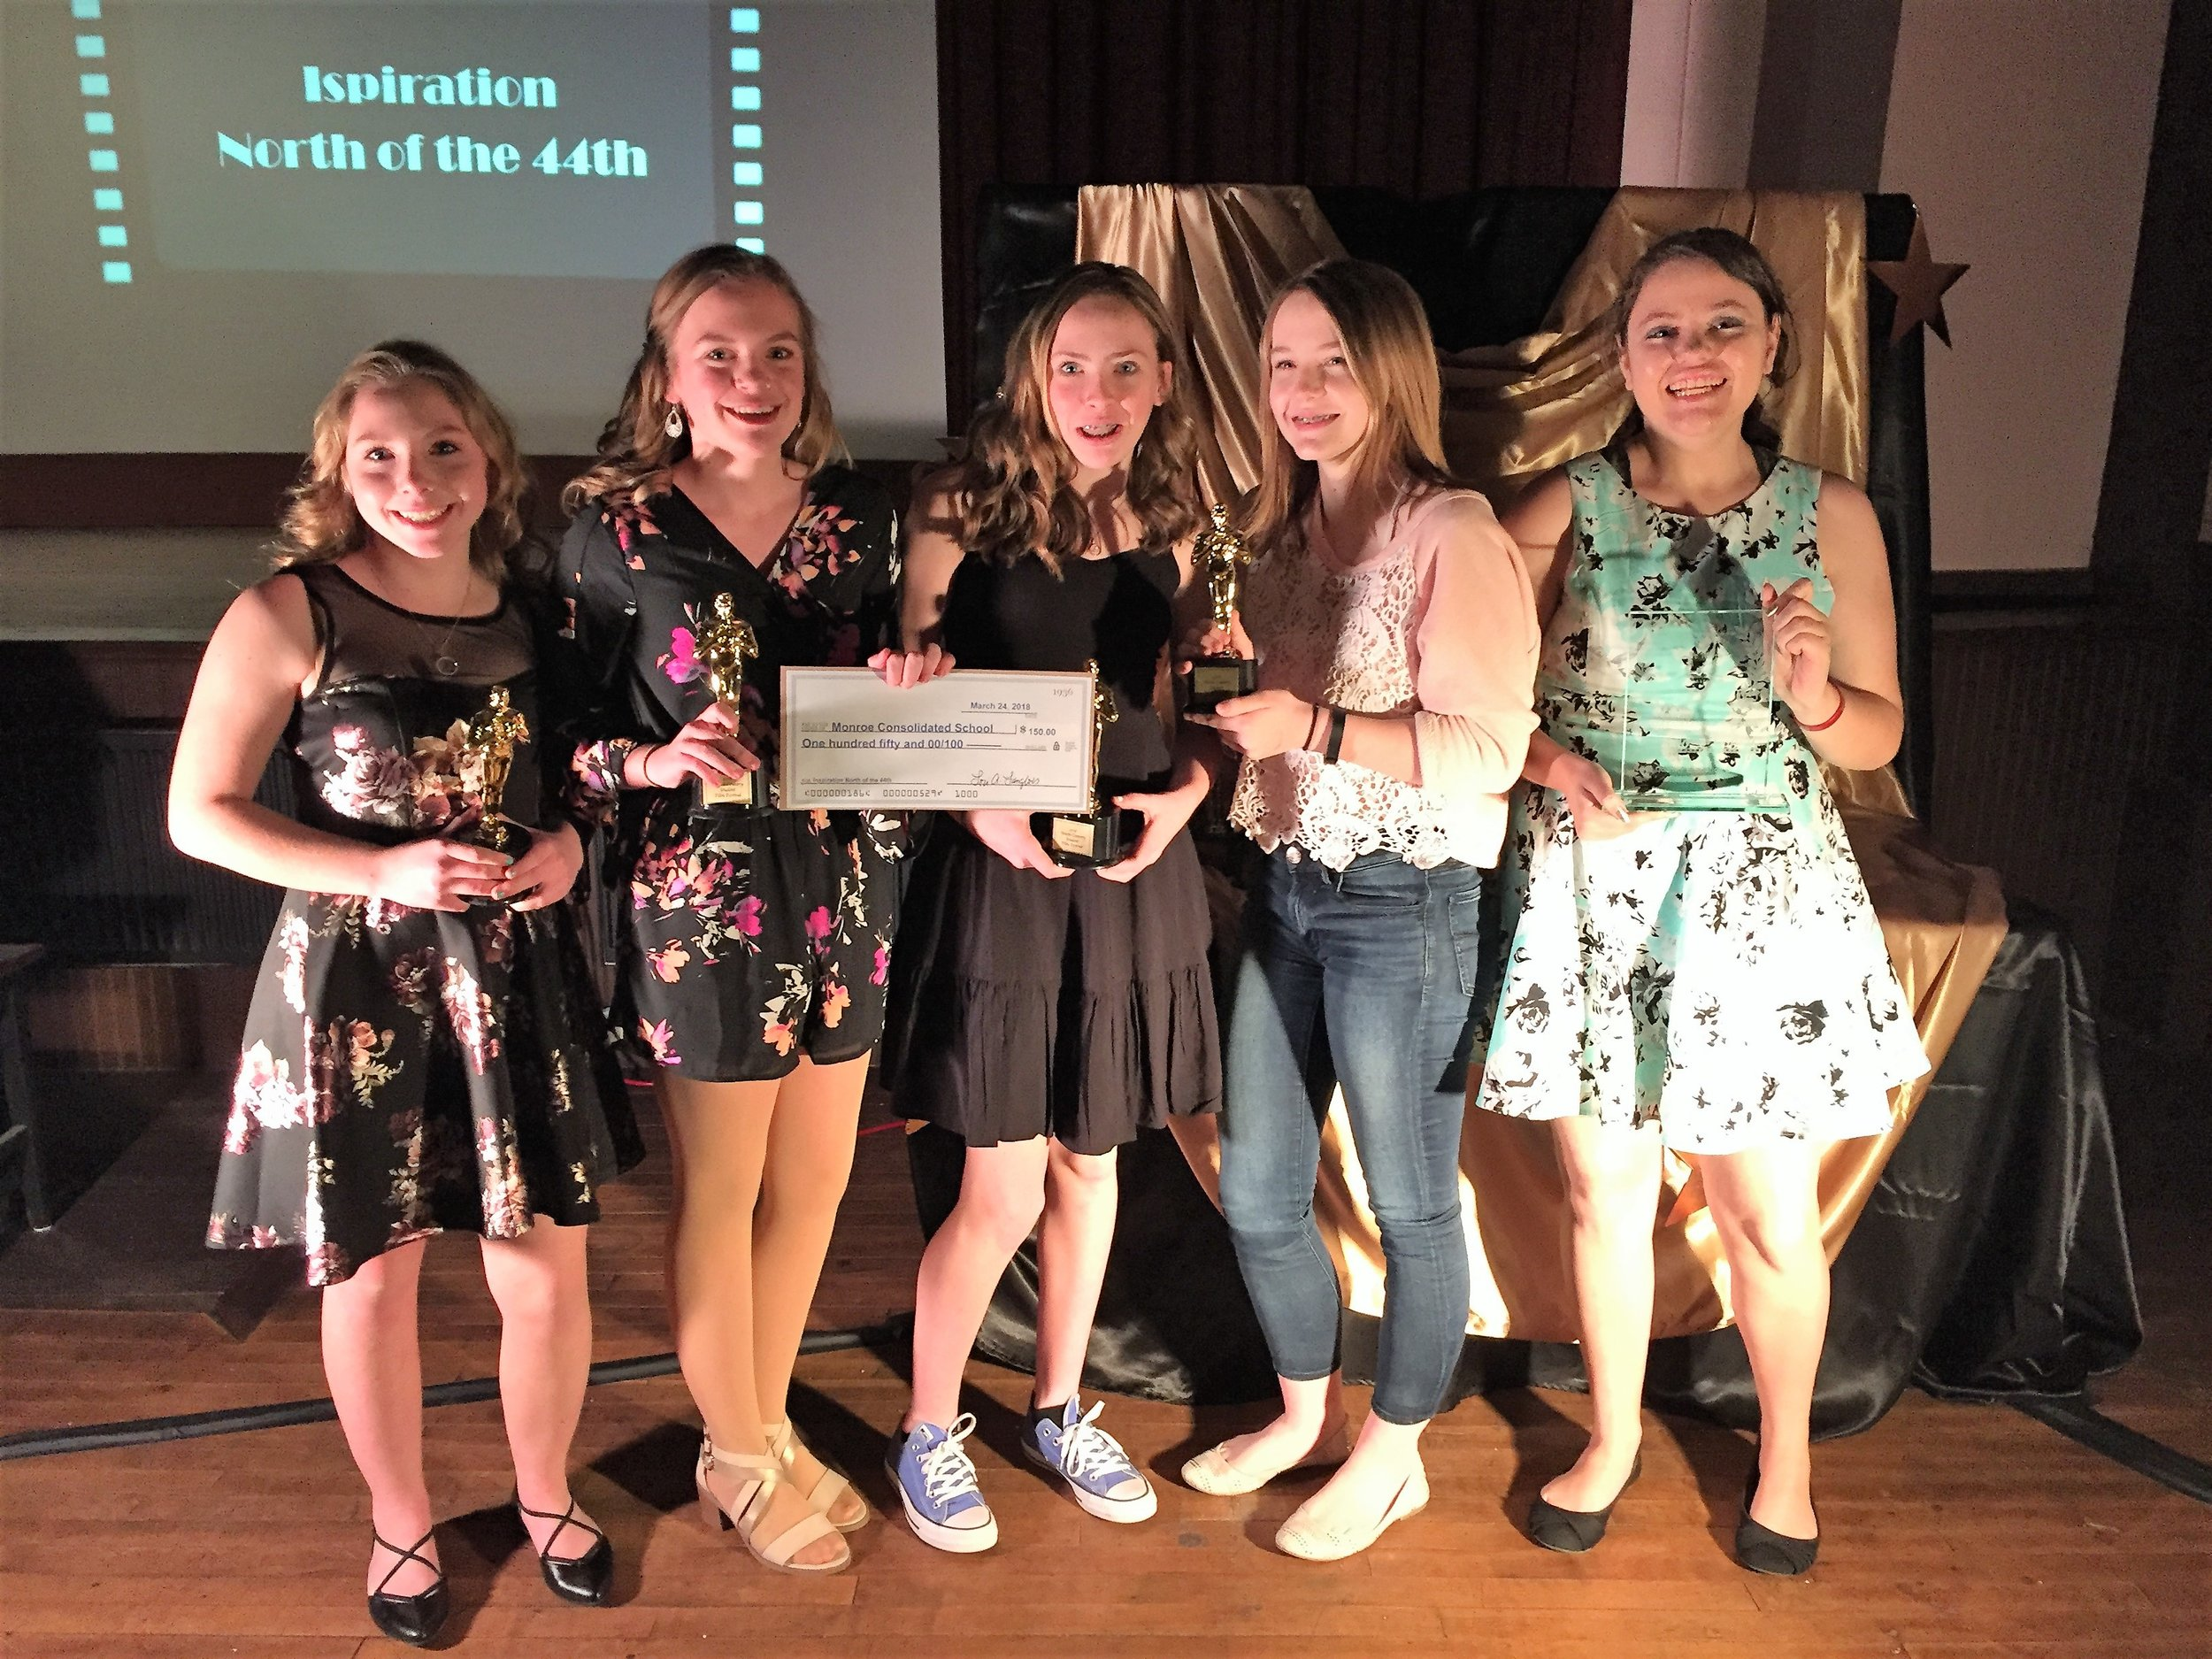 """Winner: Inspiration North of the 44th   """" You Are Worth It """" by Monroe Consolidated School"""